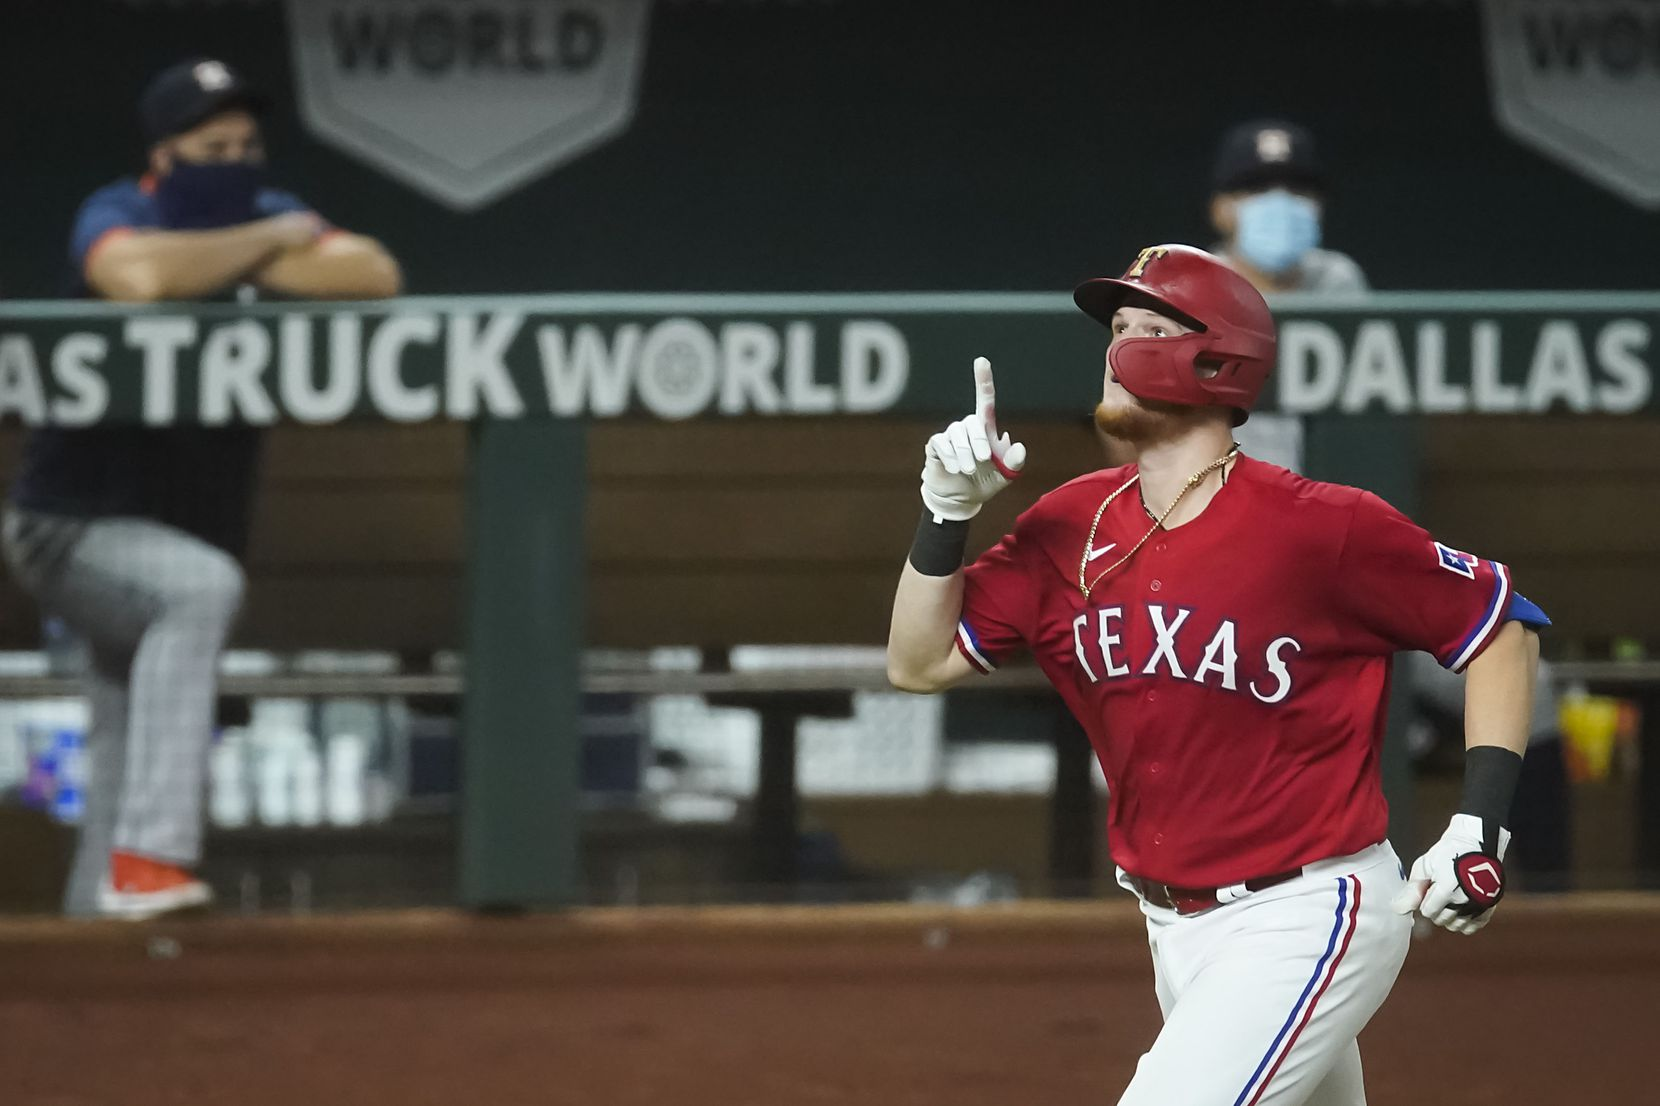 Texas Rangers catcher Sam Huff celebrates as he rounds the bases after hitting a solo home run off of Houston Astros pitcher Jose Urquidy during the fifth inning at Globe Life Field on Friday, Sept. 25, 2020.